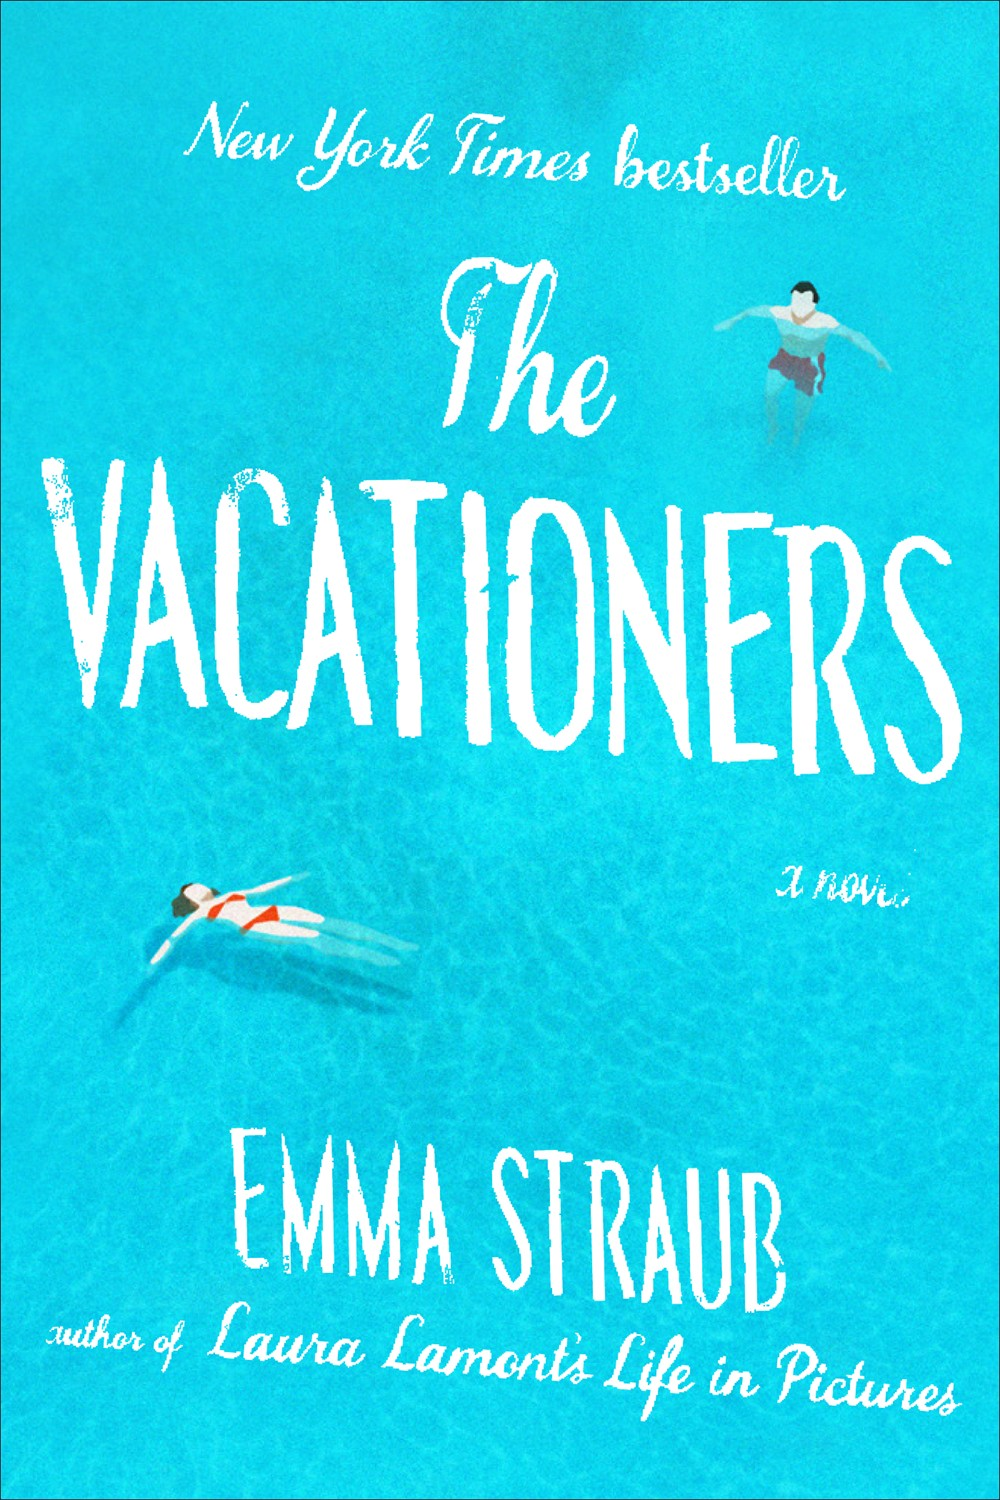 vacationers-emma-straub.jpg